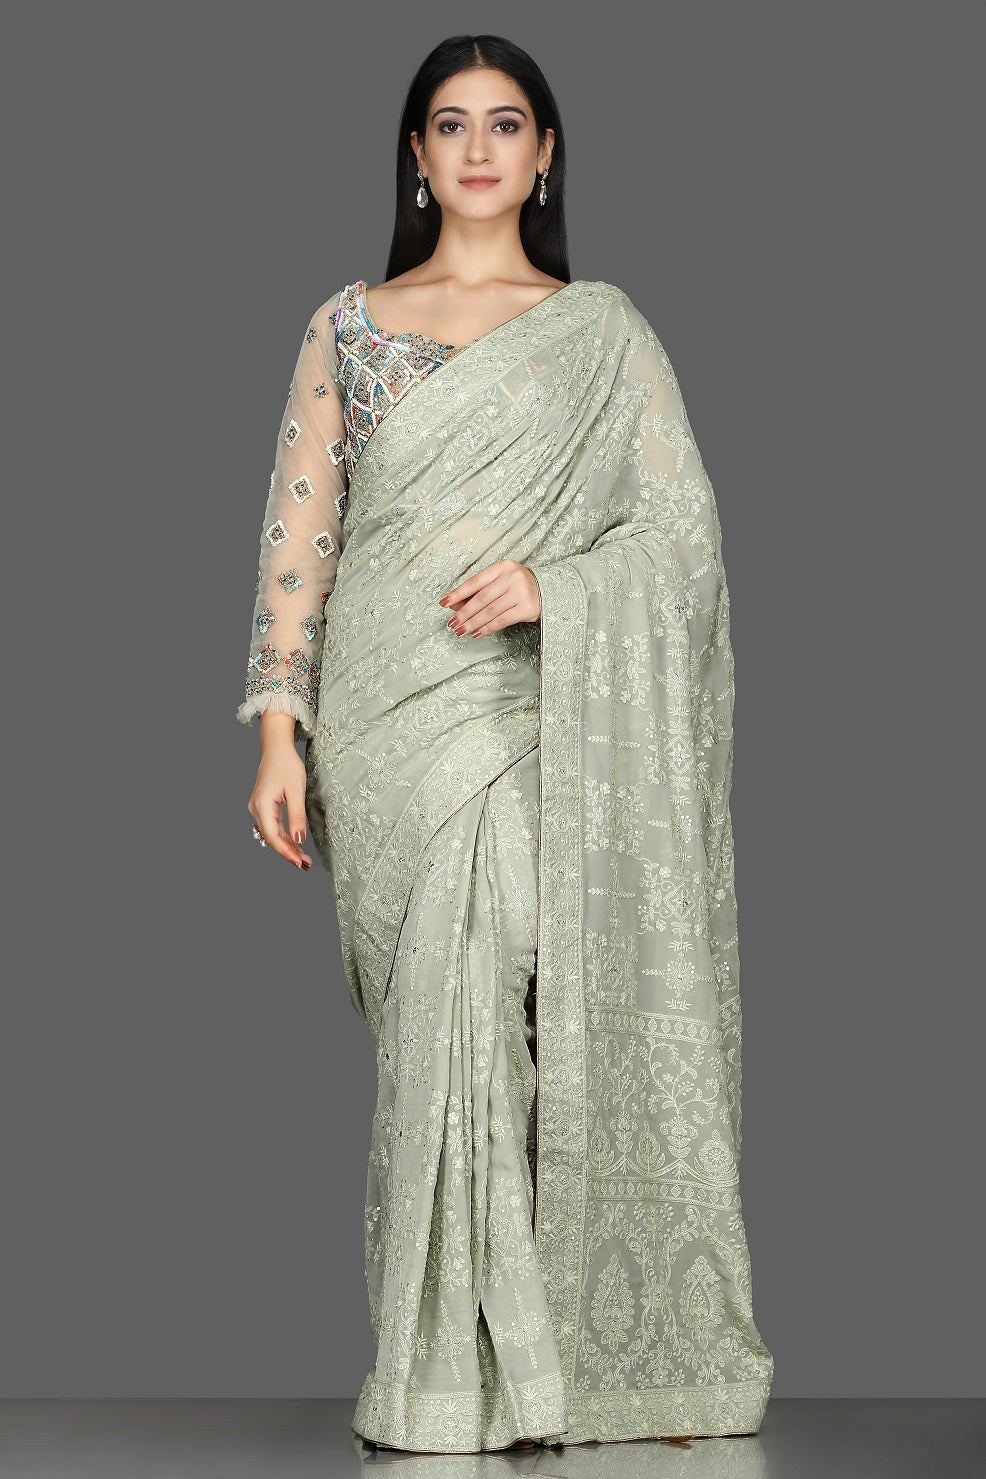 Buy gorgeous tea green Lucknowi georgette saree online in USA with embroidered blouse. Shine at weddings and special occasions with beautiful embroidered sarees, designer sari with in USA from Pure Elegance Indian clothing in USA.-full view